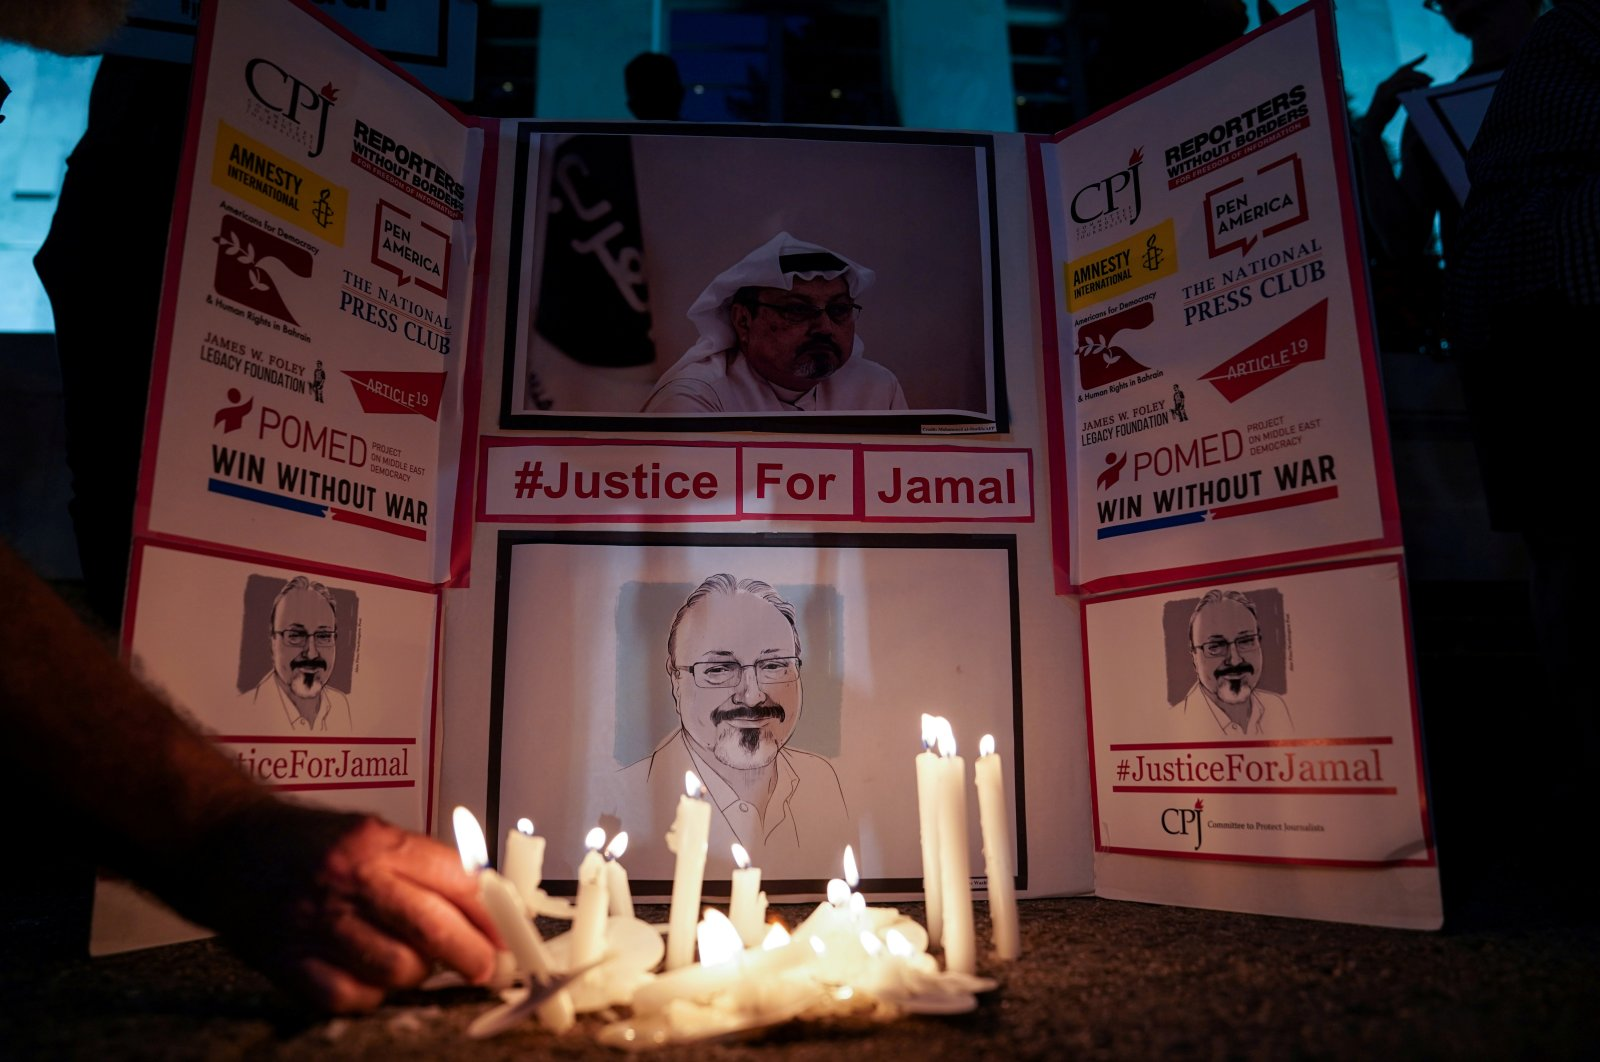 The Committee to Protect Journalists and other press freedom activists hold a candlelight vigil in front of the Saudi Embassy to mark the anniversary of the killing of journalist Jamal Khashoggi at the kingdom's consulate in Istanbul, Washington, D.C, the U.S., Oct. 2, 2019. (Reuters Photo)